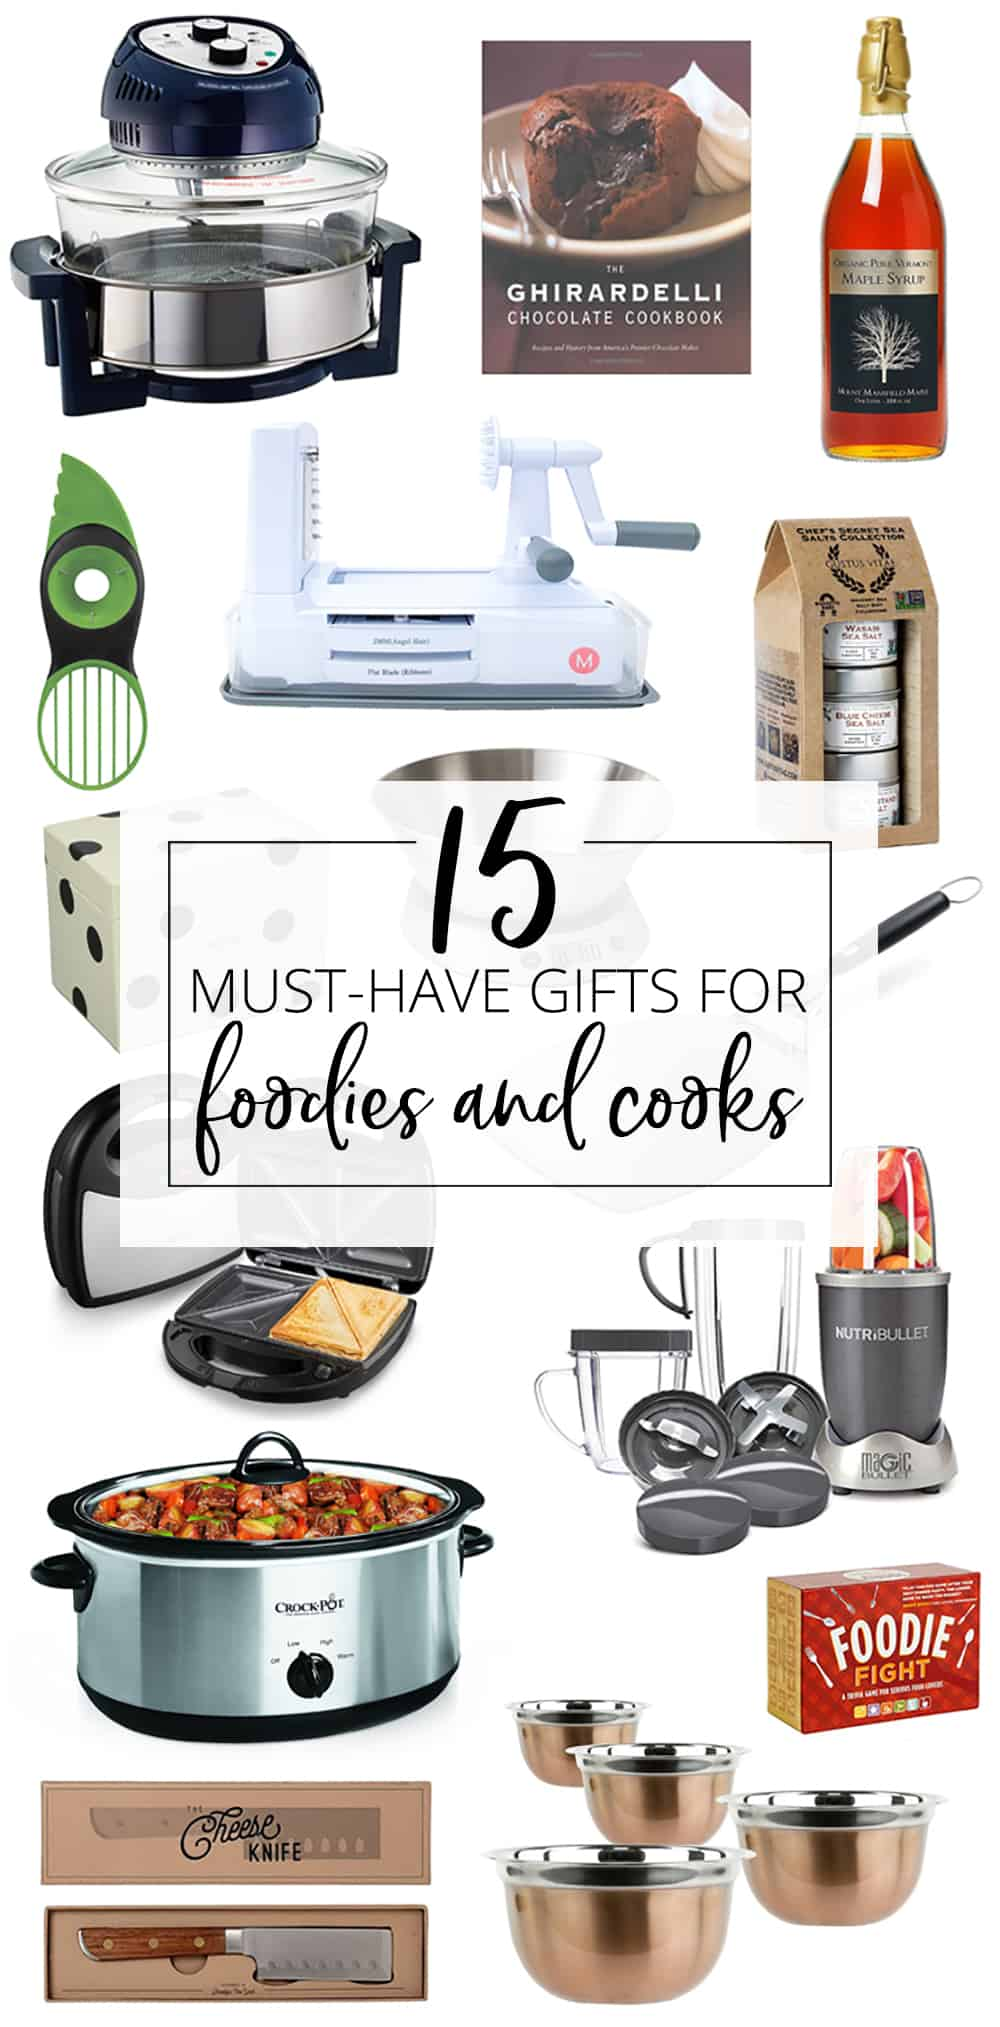 Gifts for Foodies and Cooks